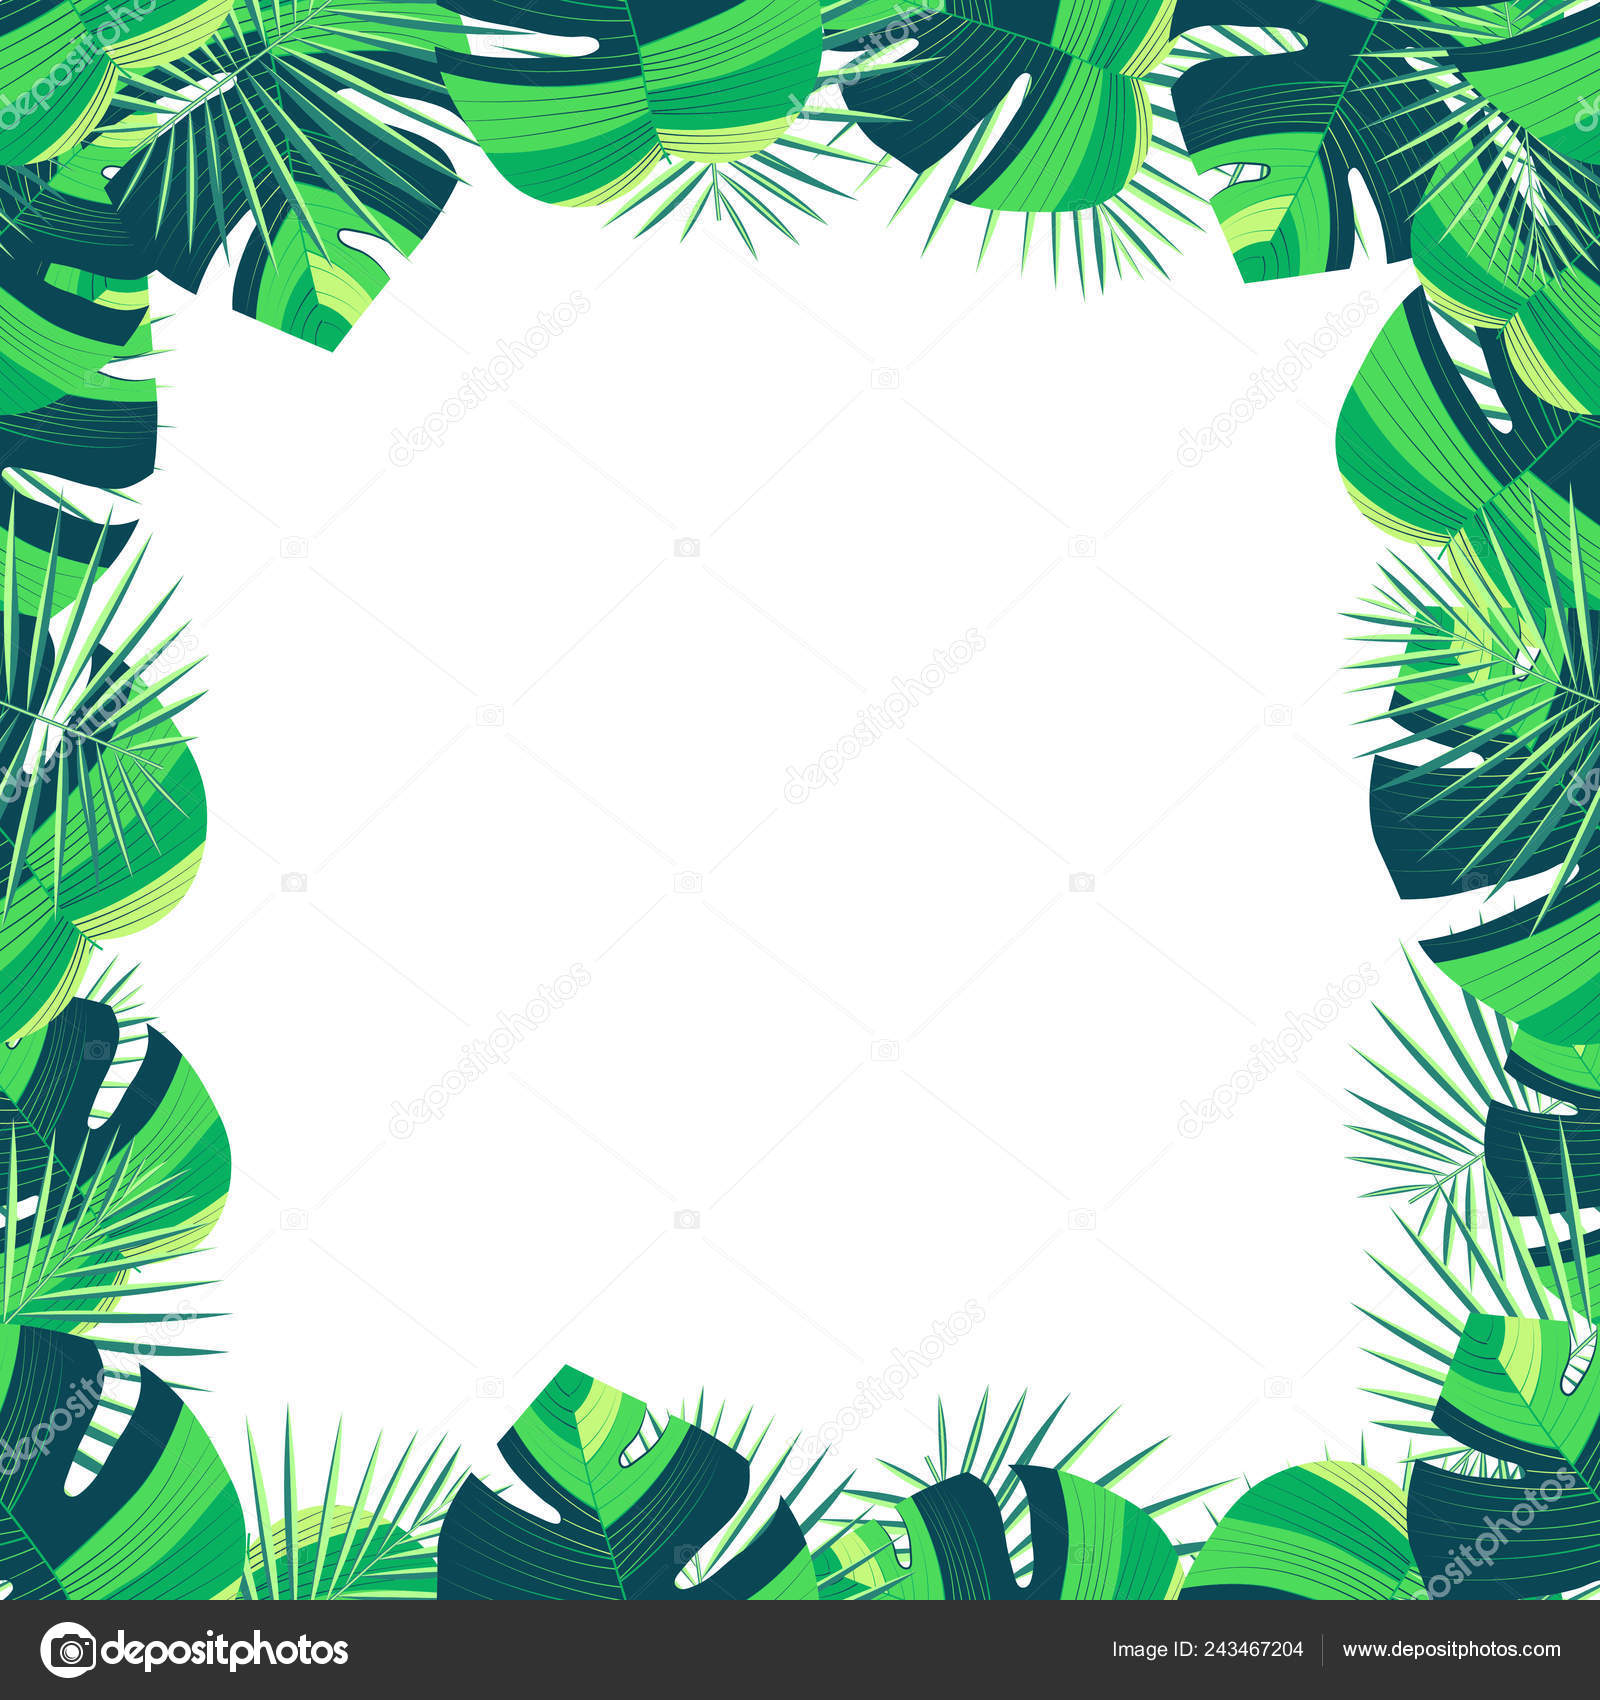 Tropical Exotic Background Floral Design For A Banner Fashion Sale Poster Template Cool Decorative Summer Art Illustration With Tropical Palm Leaves Frame Cute Template For Advertisement Flyer Stock Vector C Chiken Brave 243467204